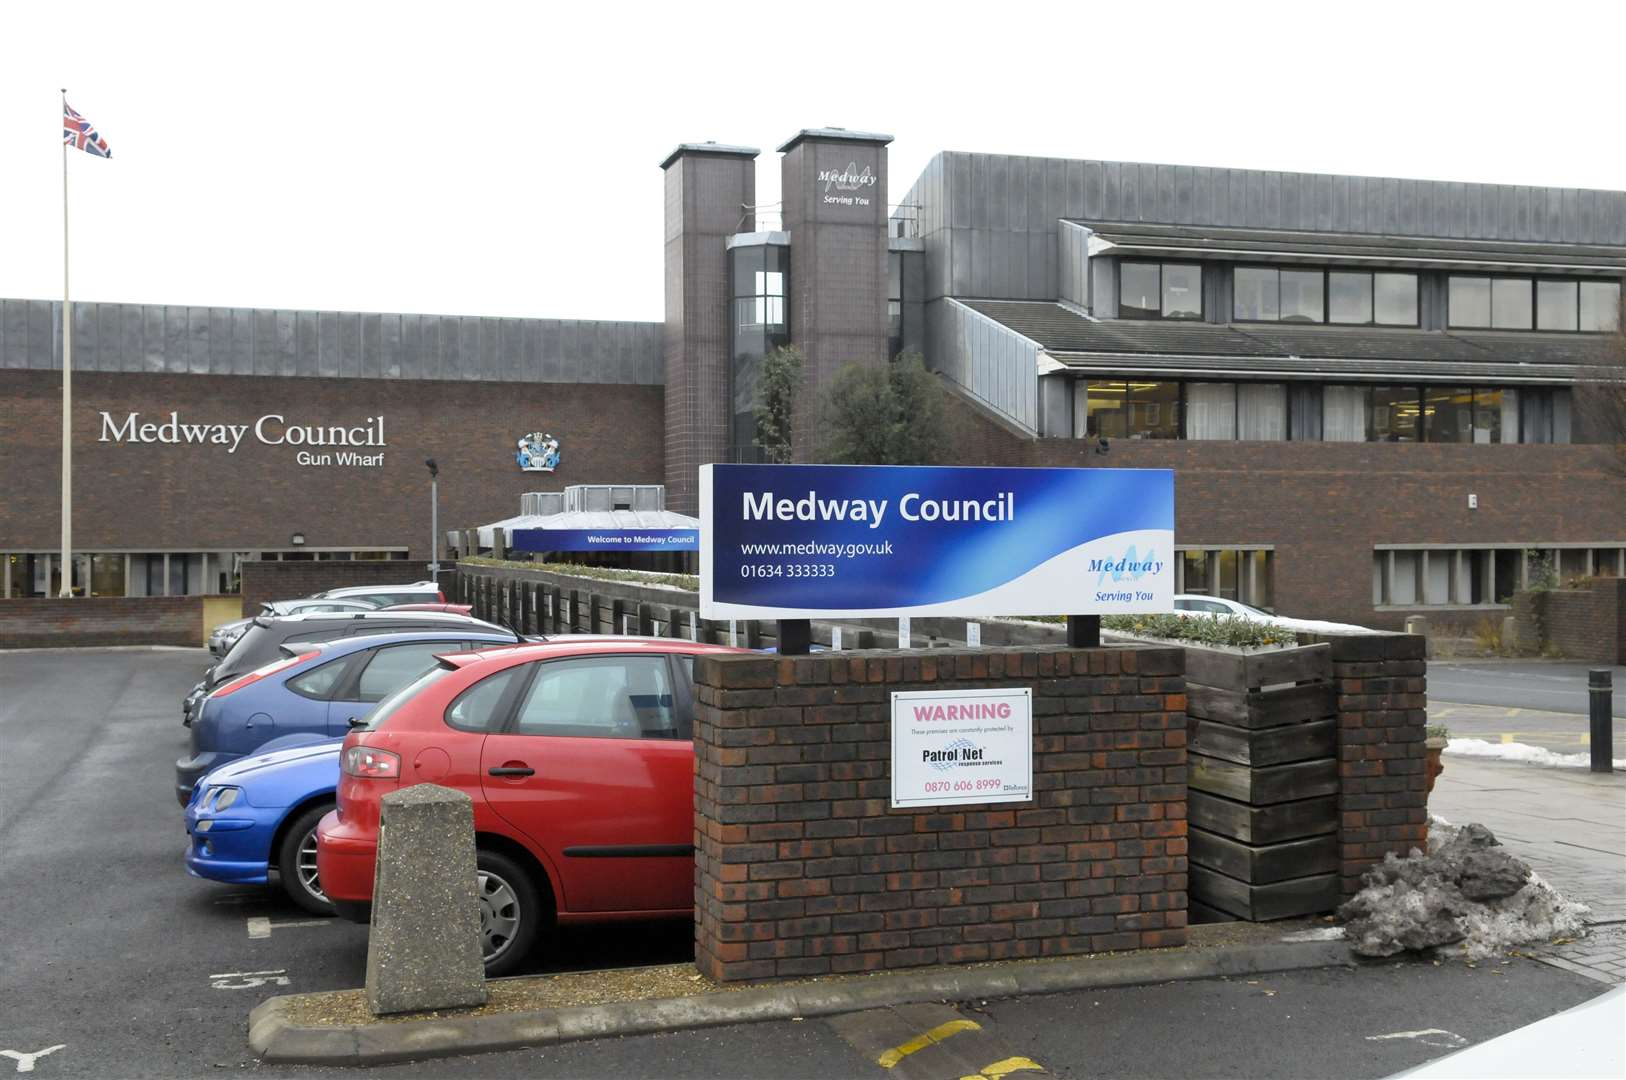 Medway Council offices at Gun Wharf, Dock Road, Chatham